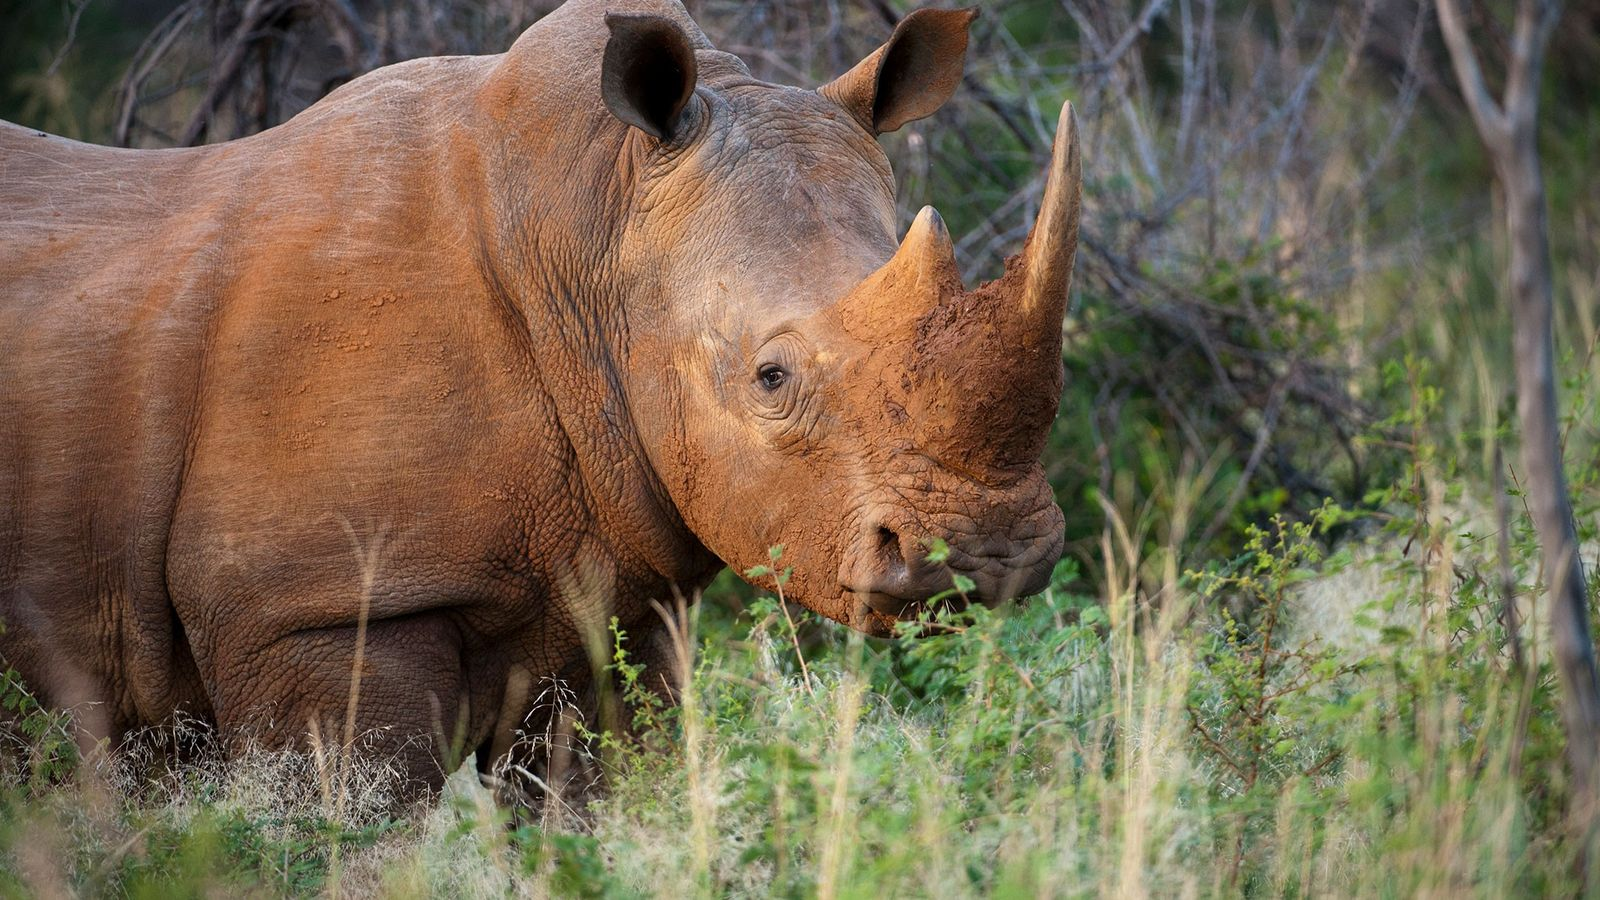 A southern white rhino ('Ceratotherium simum ssp. simum') at a game reserve in South Africa.